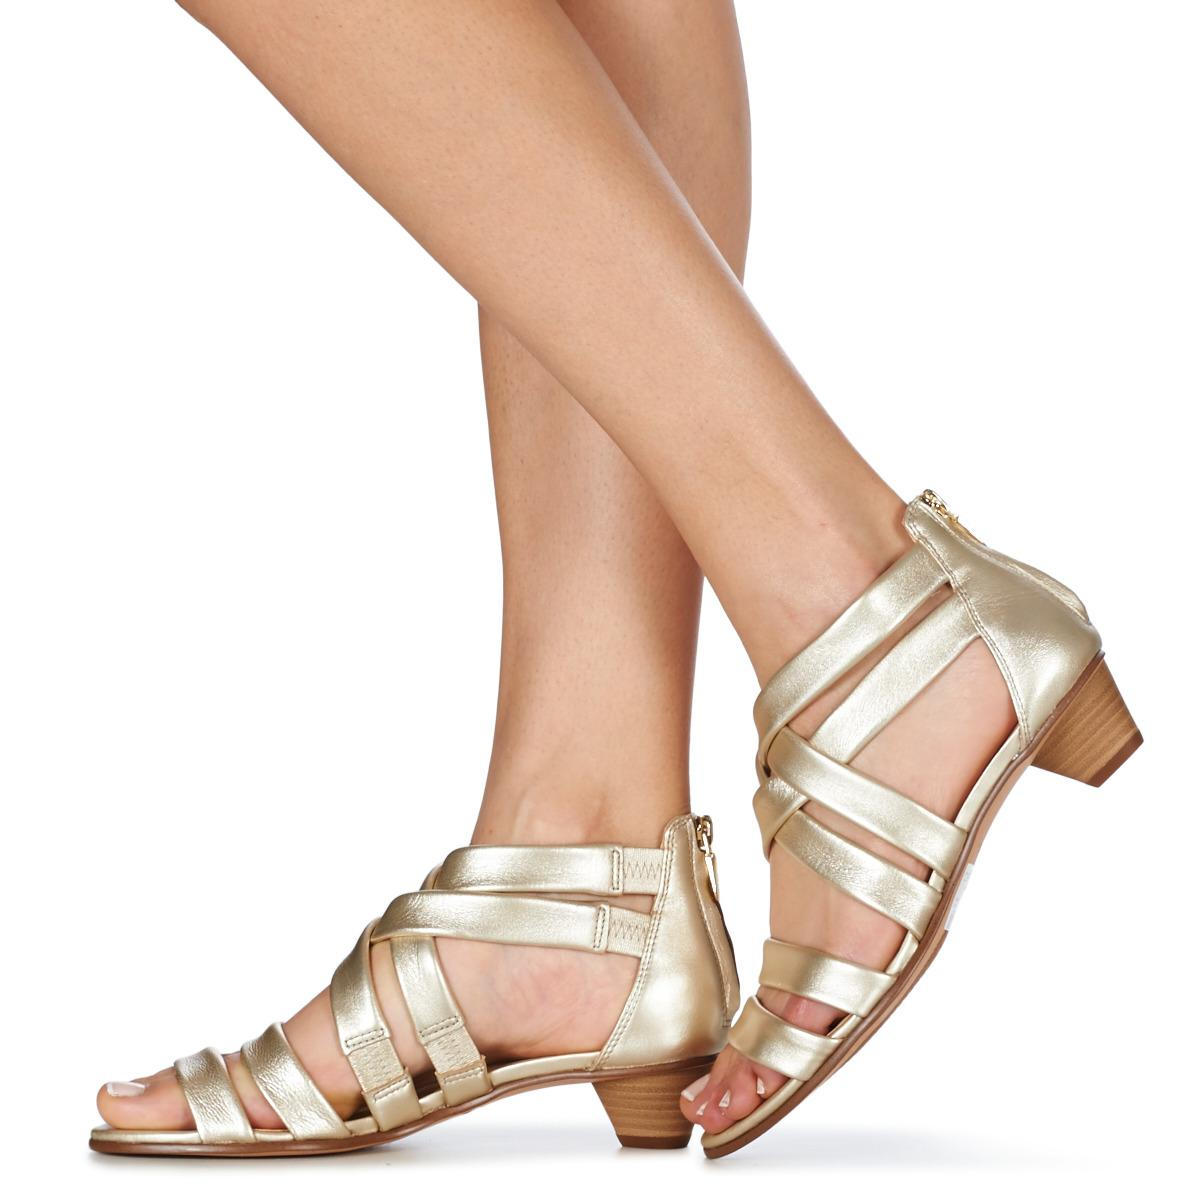 100% authentic reputation first soft and light Metallic Mena Silk Women's Sandals In Silver